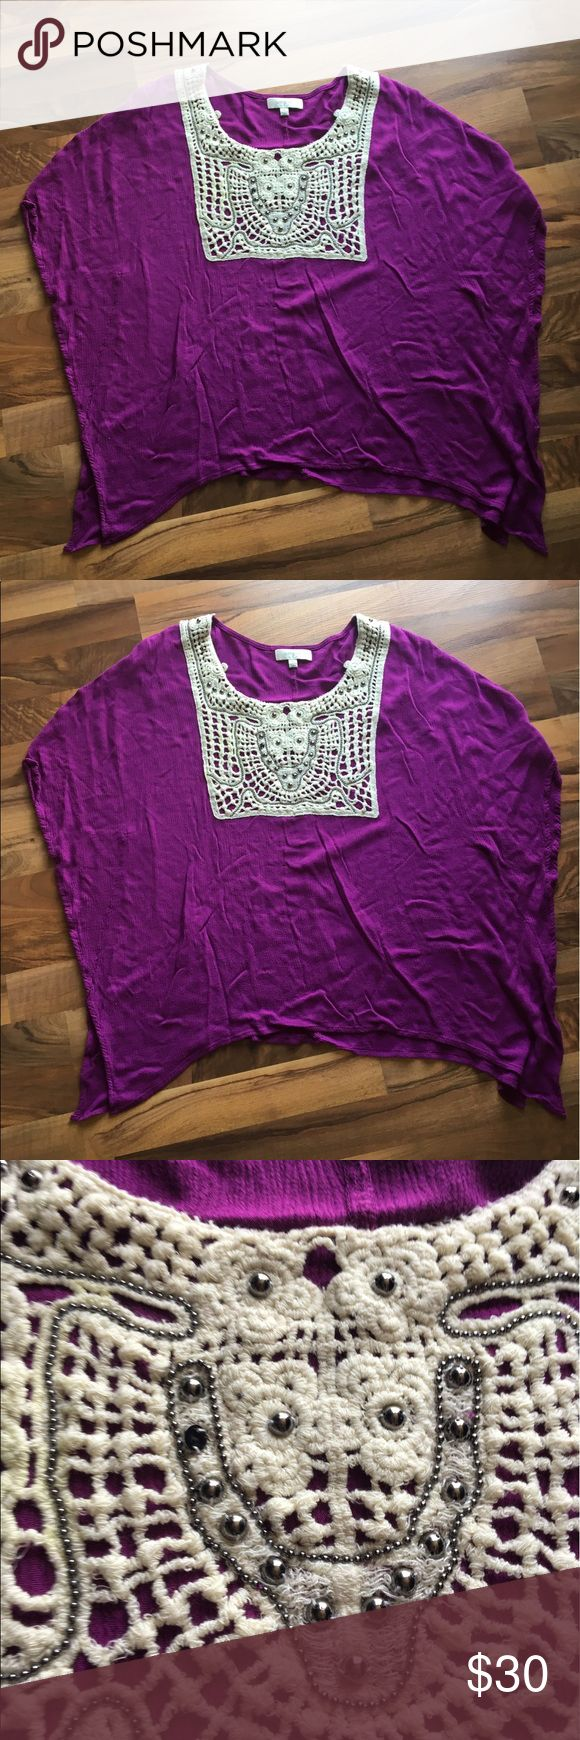 Umgee Purple Tunic Umgee purple short sleeve tunic/blouse, women's size extra large. Beautiful crotchet like detailing on the neckline. 60% cotton, 40% polyester. No rips or stains. Smoke and pet free home. Umgee Tops Tunics